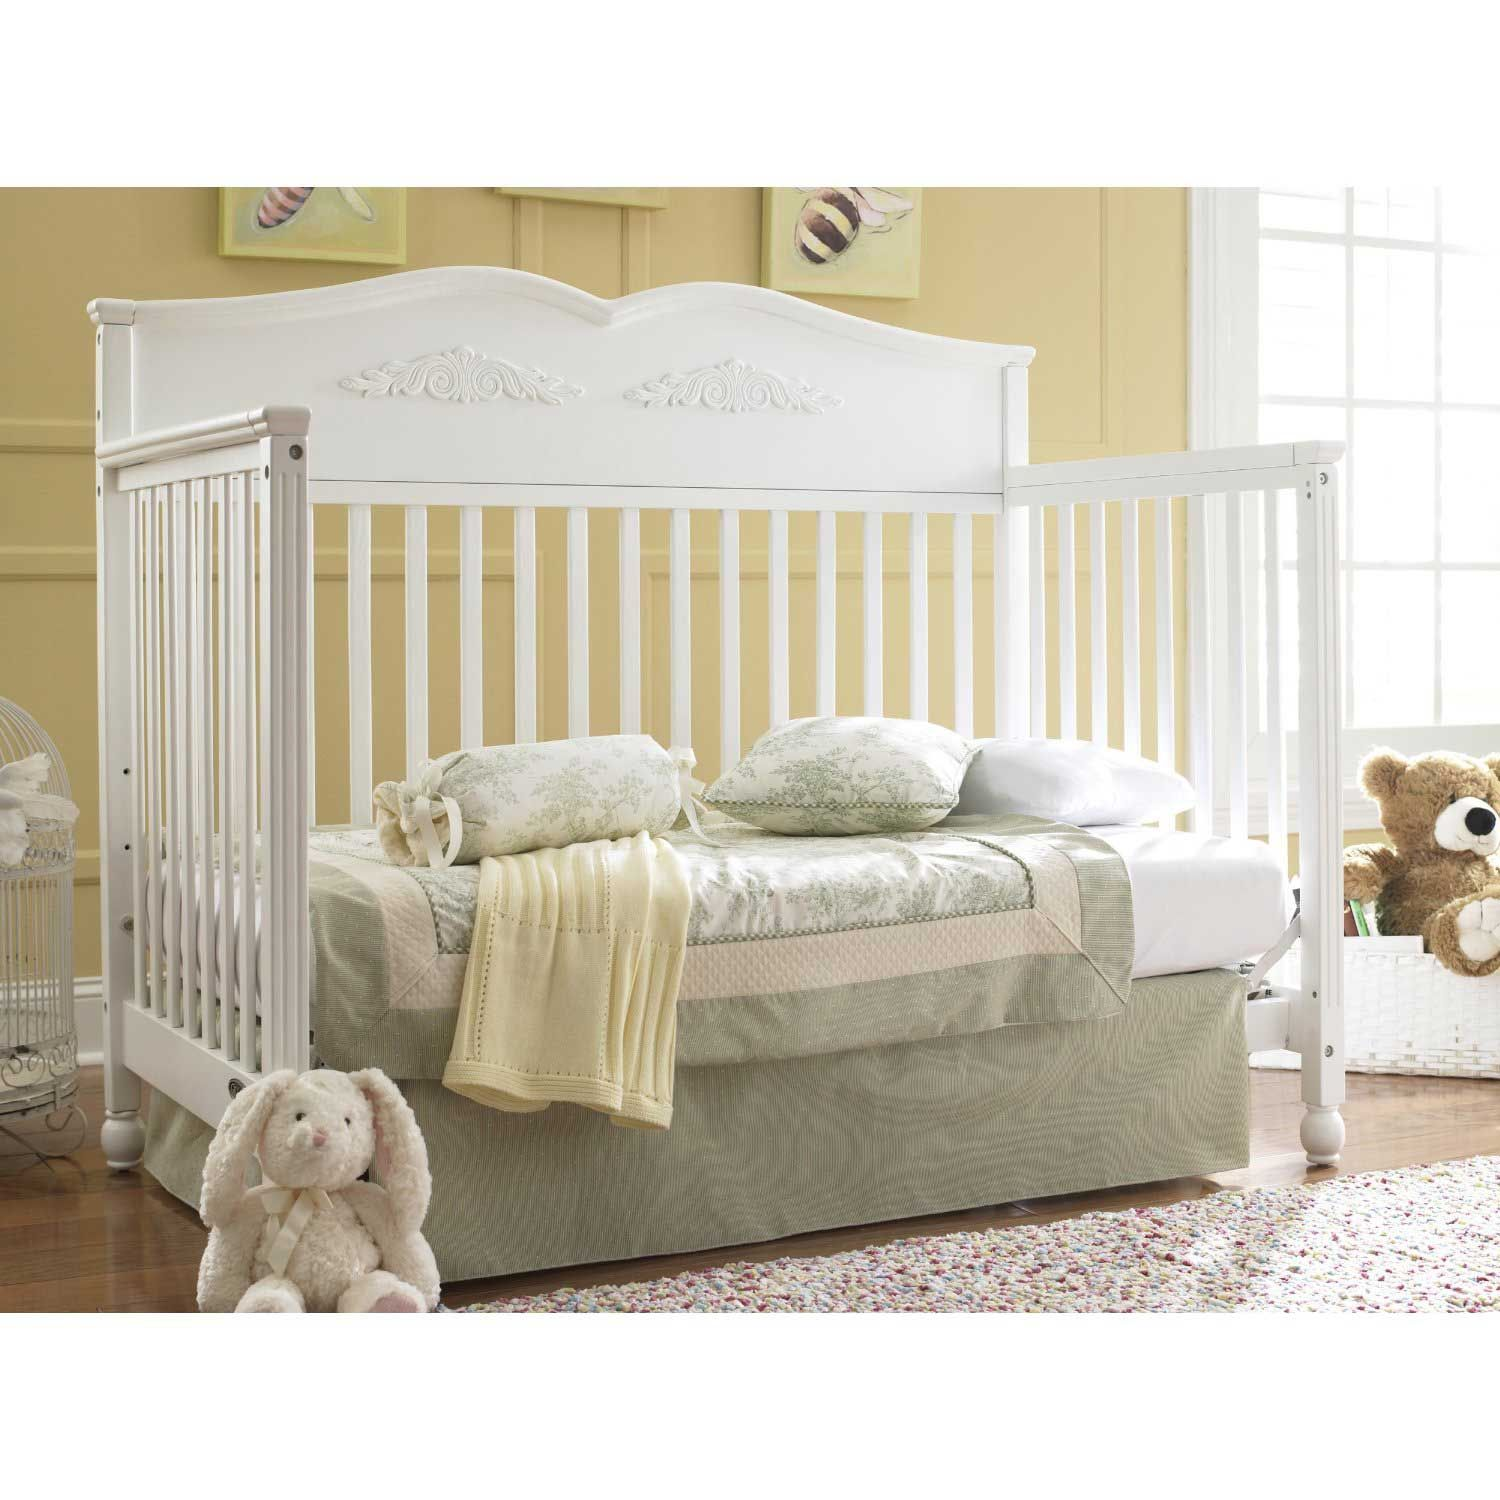 solid wood baby furniture. Discount White Durable Solid Wood 5 In 1 Convertible Baby Cribs Furniture N